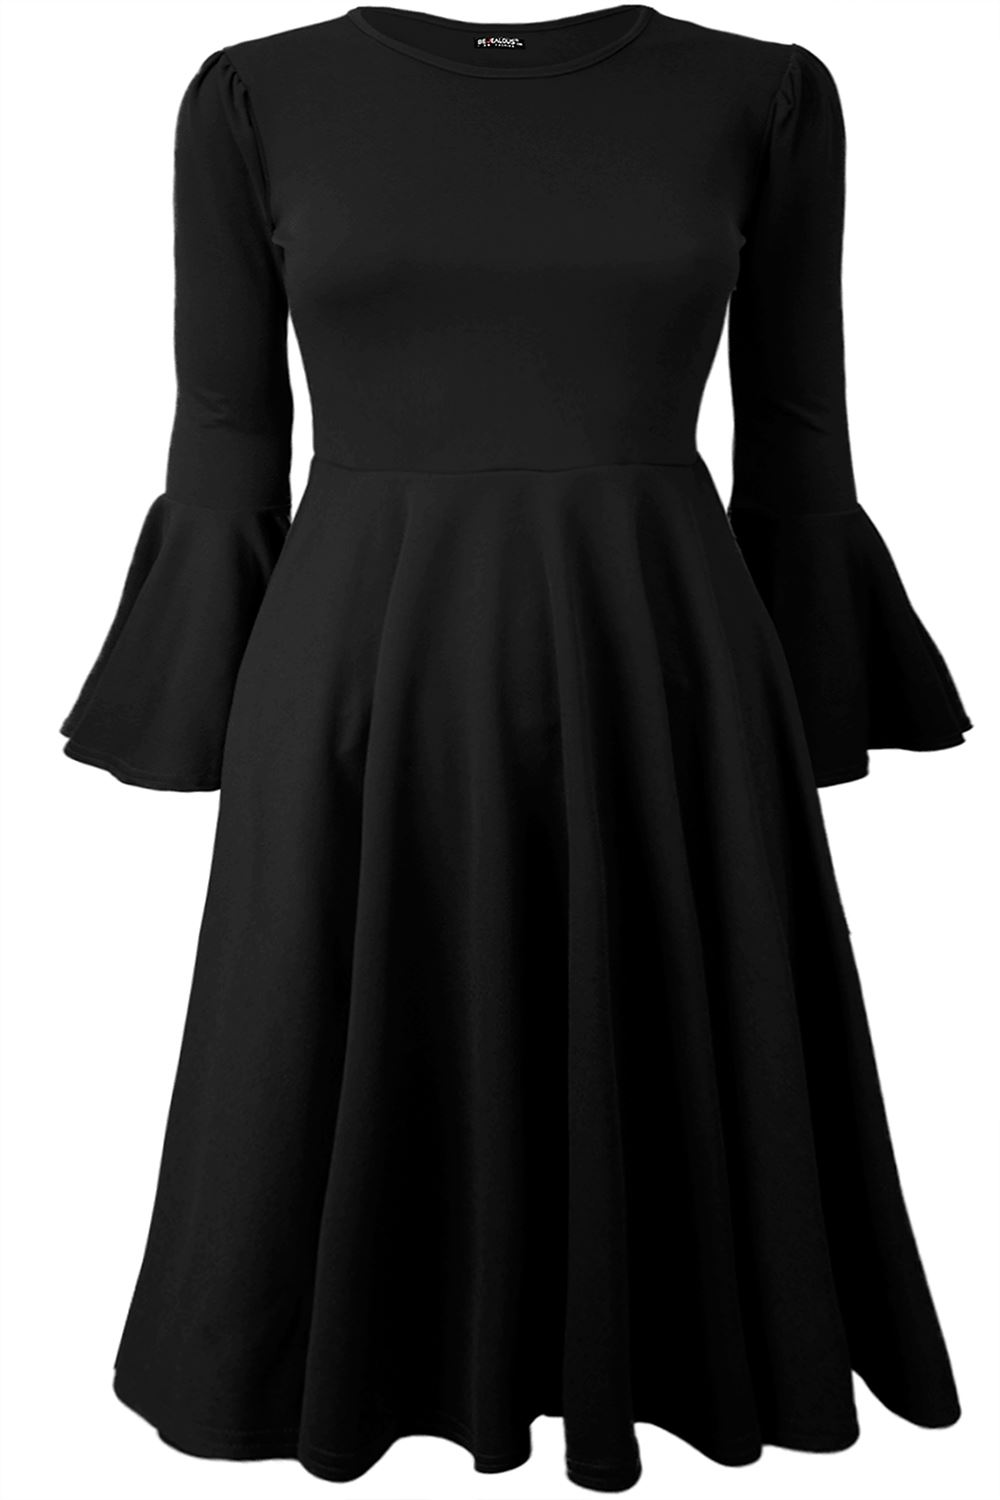 Plus Size Ladies Womens Frill Long Bell Sleeve Flared Skater Swing Midi Dress